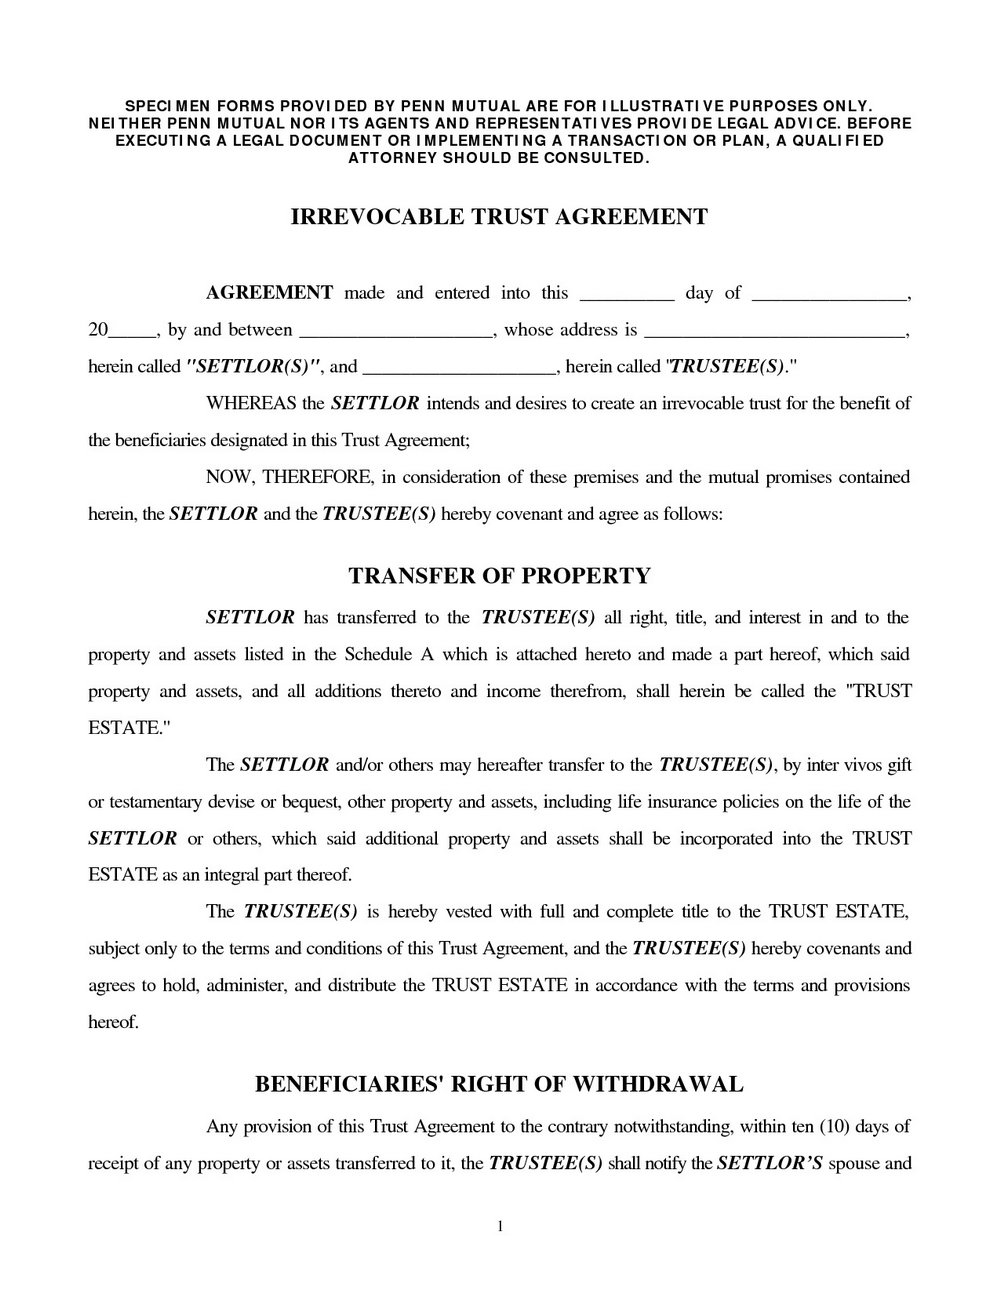 Irrevocable Trust Form